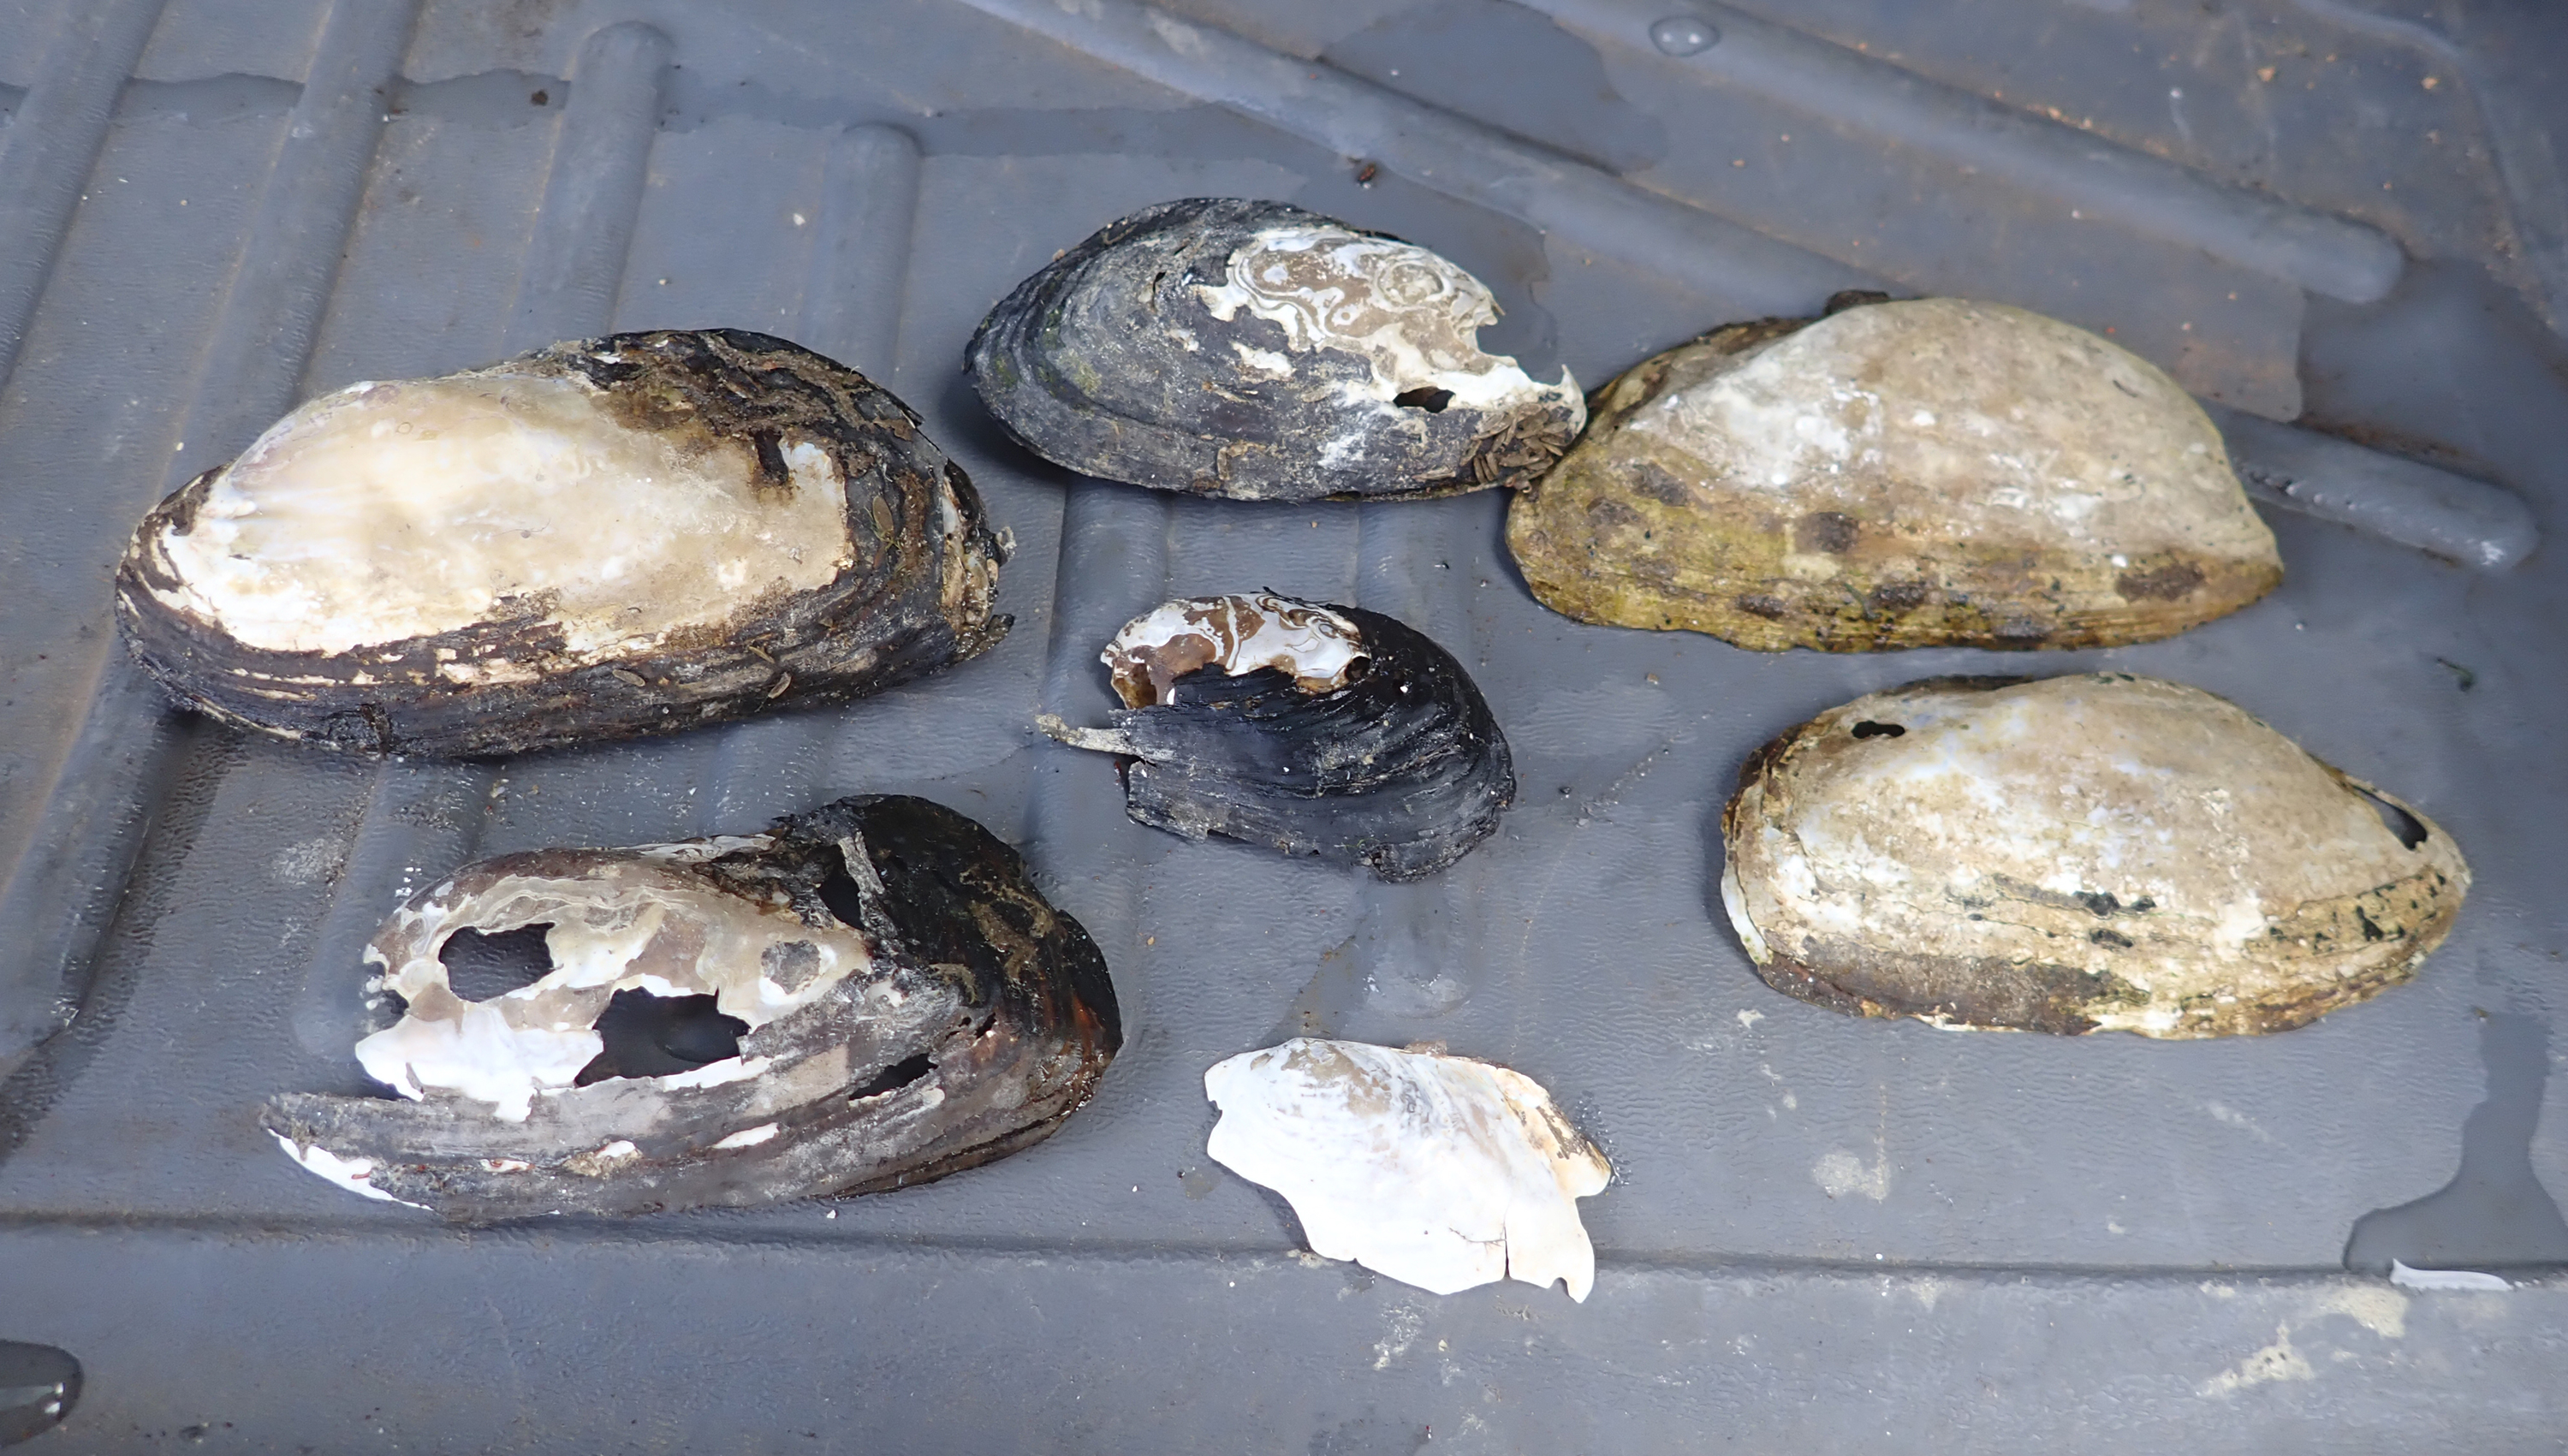 Laid out in the bed of a pickup truck, the brown-and-white weathered shells and shell fragments are the only signs that western ridged mussels where once abundant in this river.